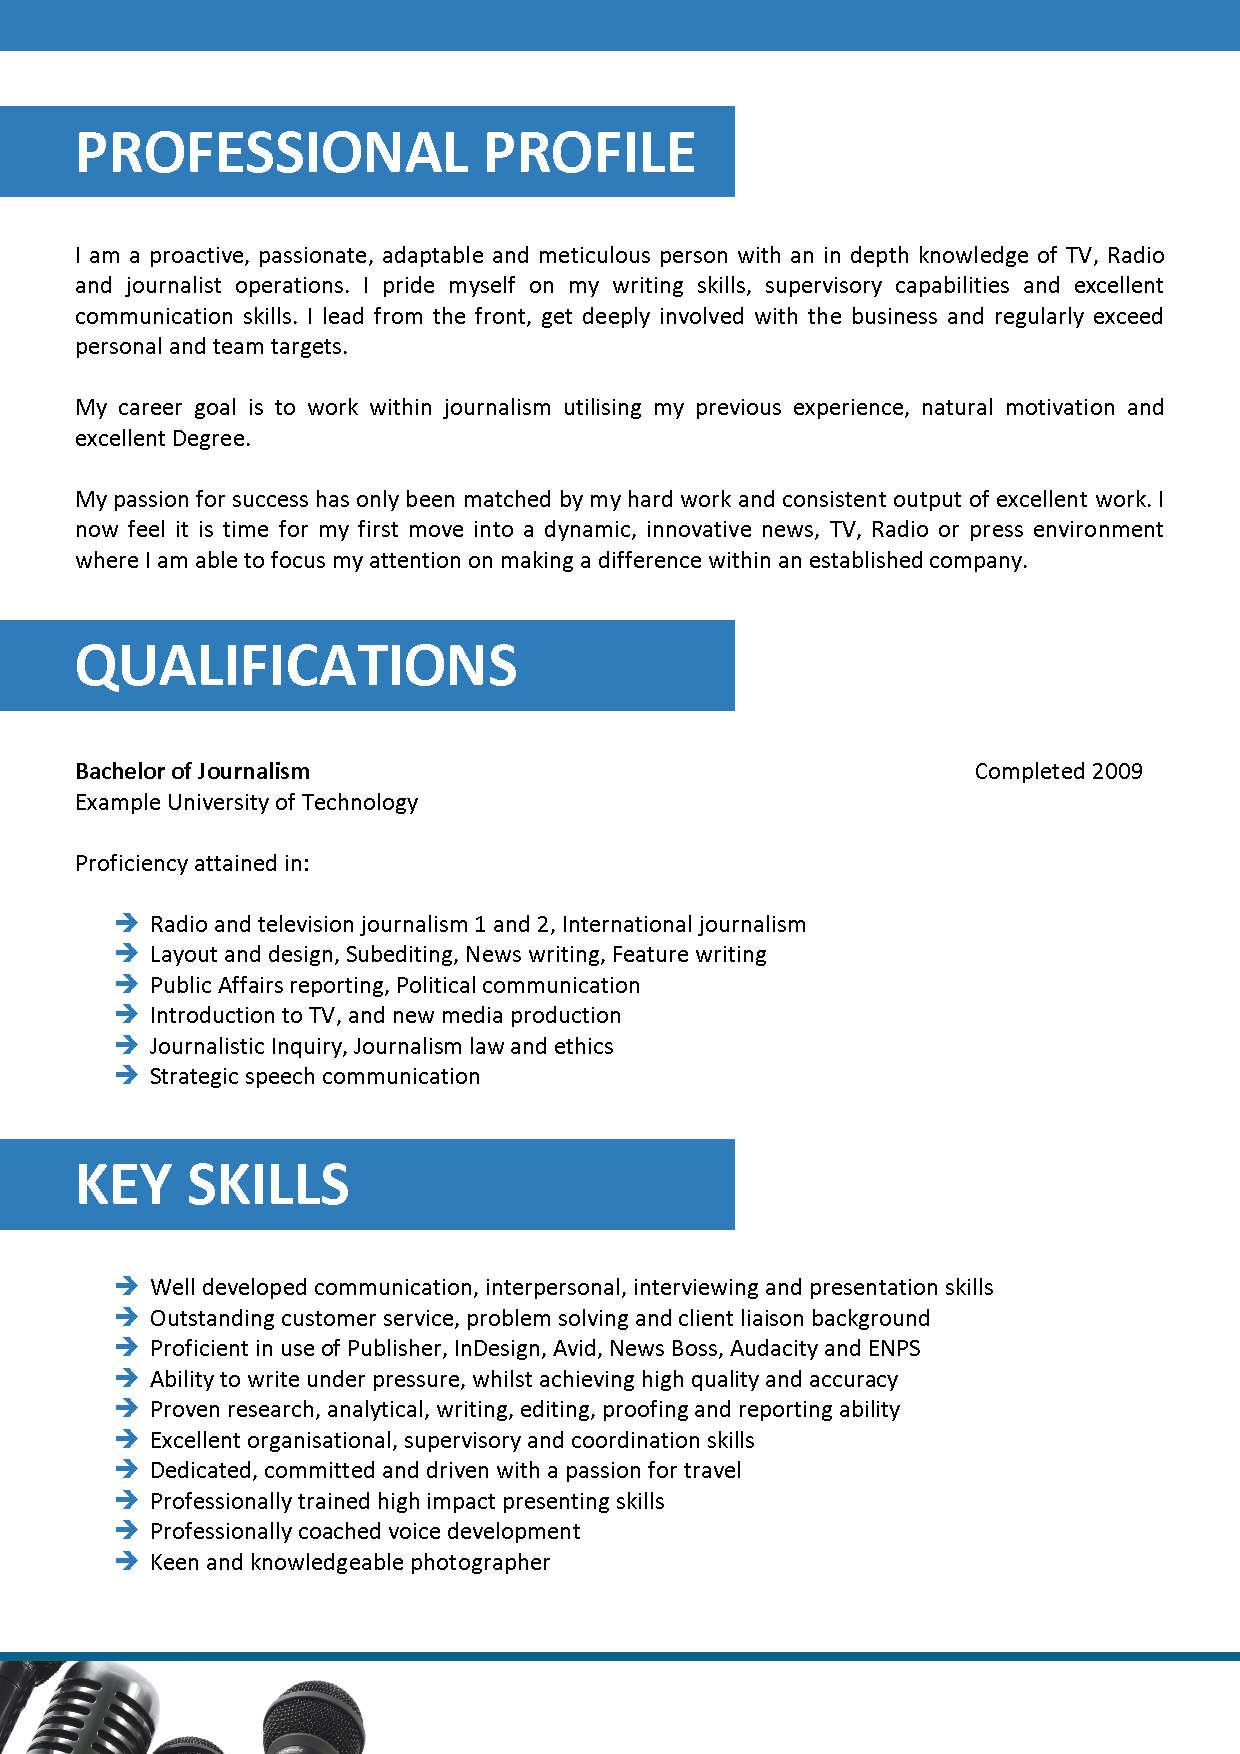 Resume Sample Resume For Journalism Graduates journalism resume format samples visualcv database updated